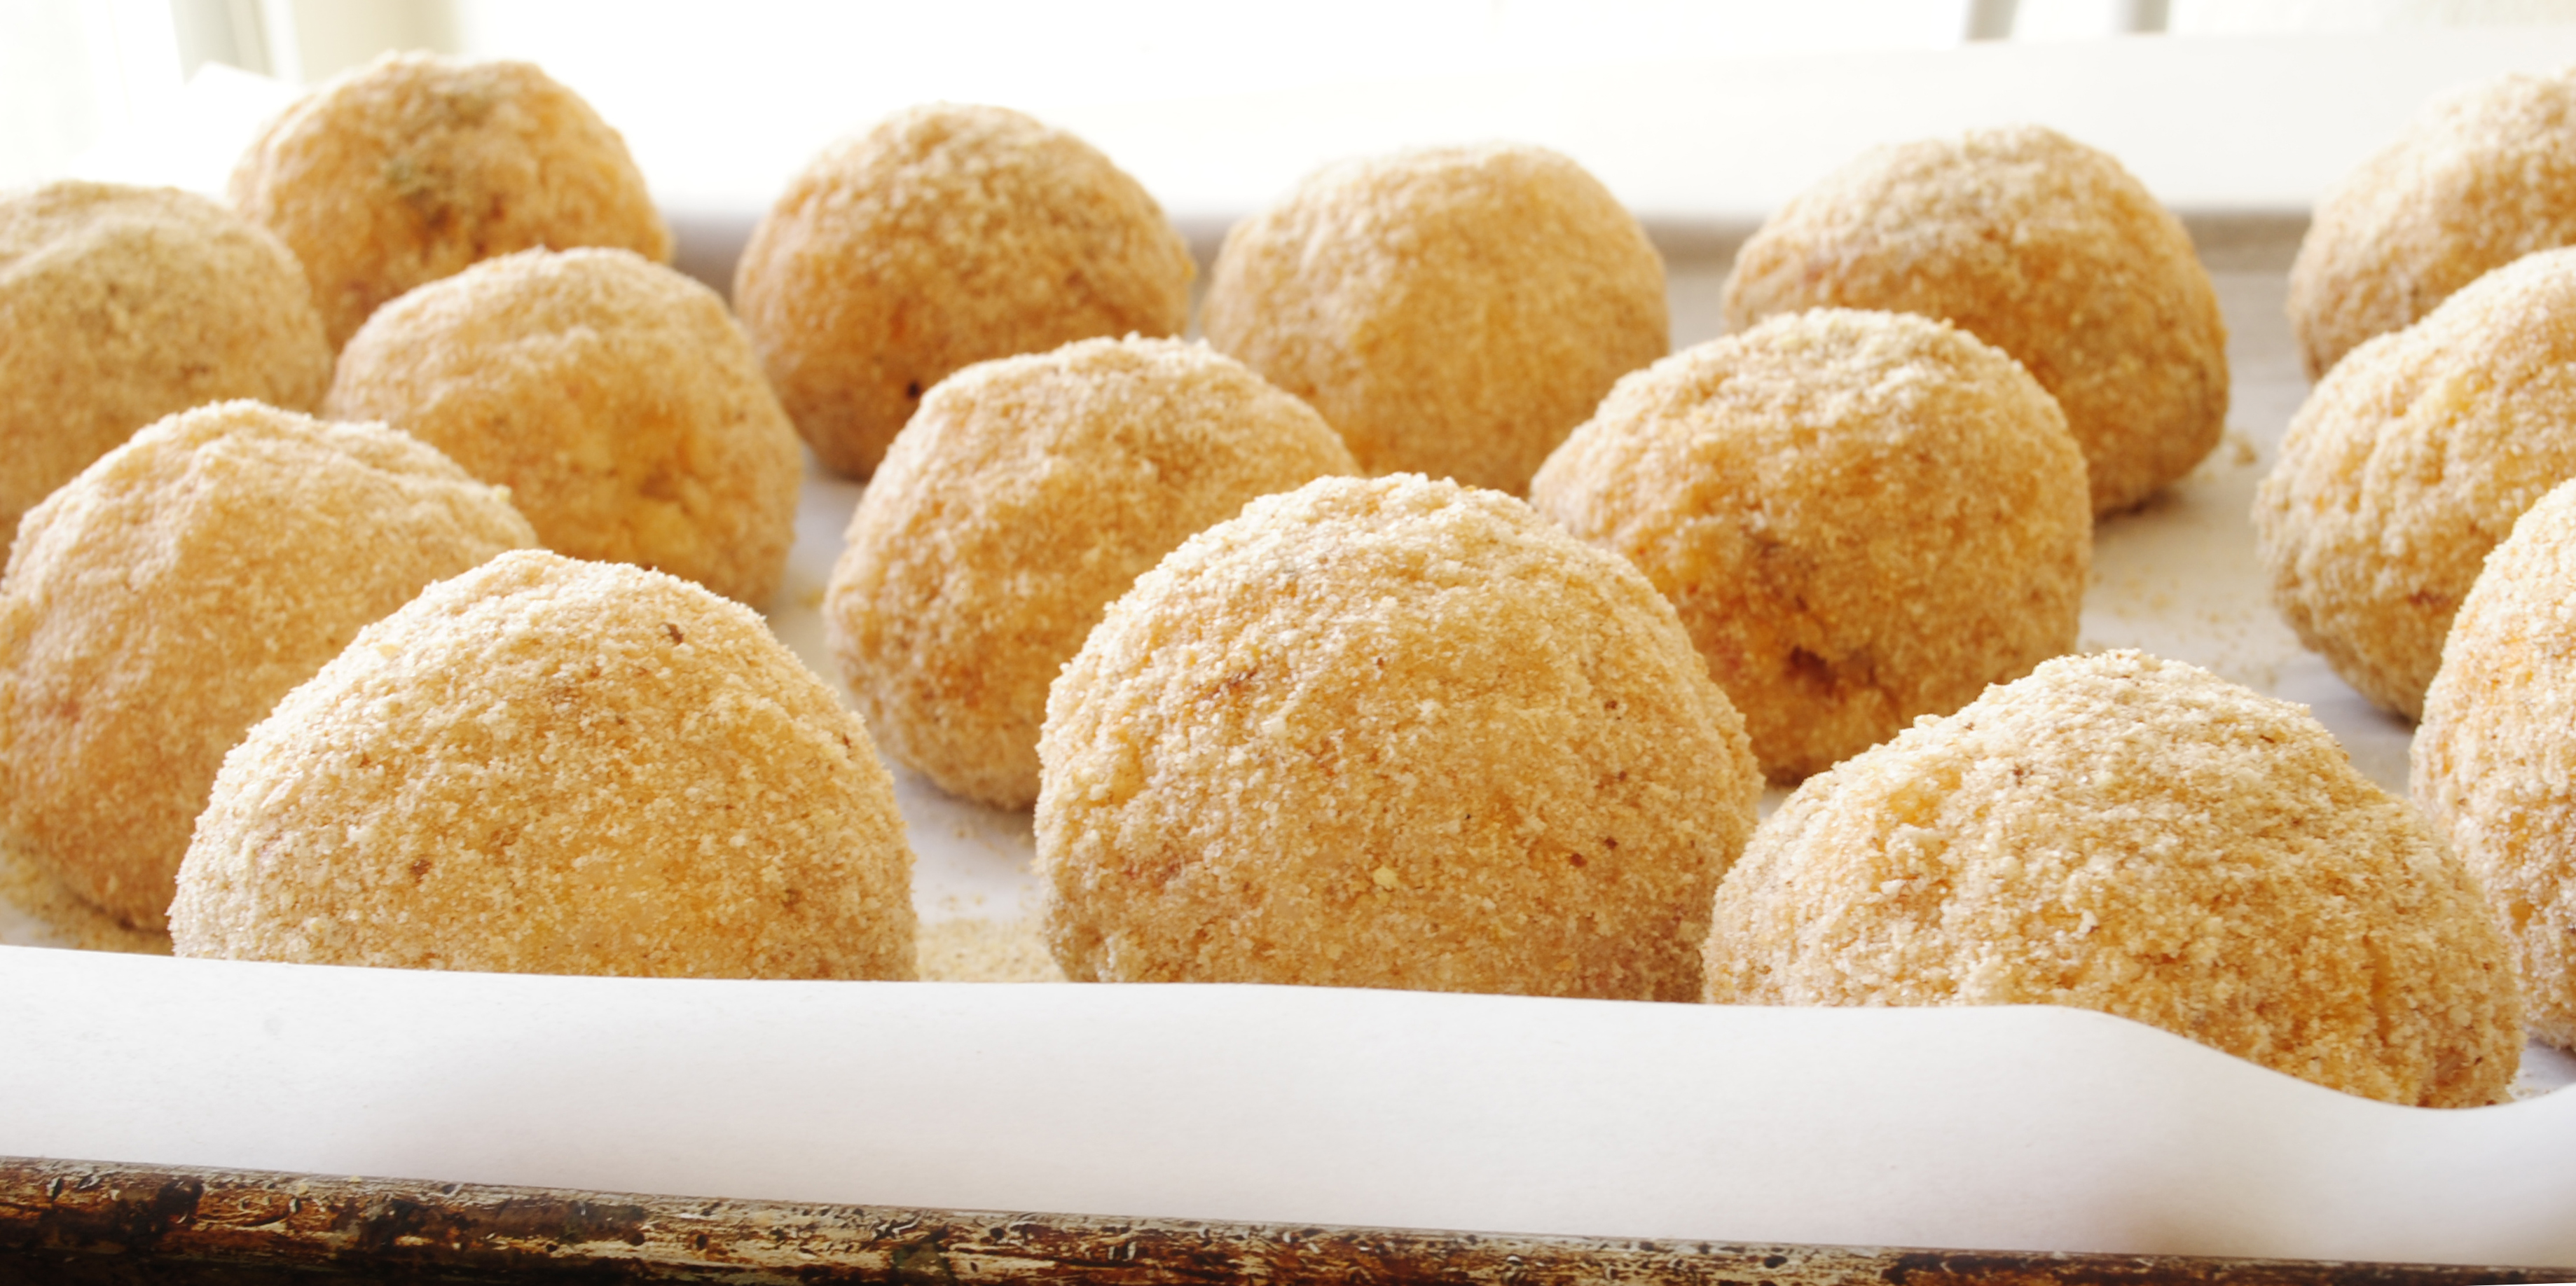 ... rice balls or arancini are typically deep fried rice balls or